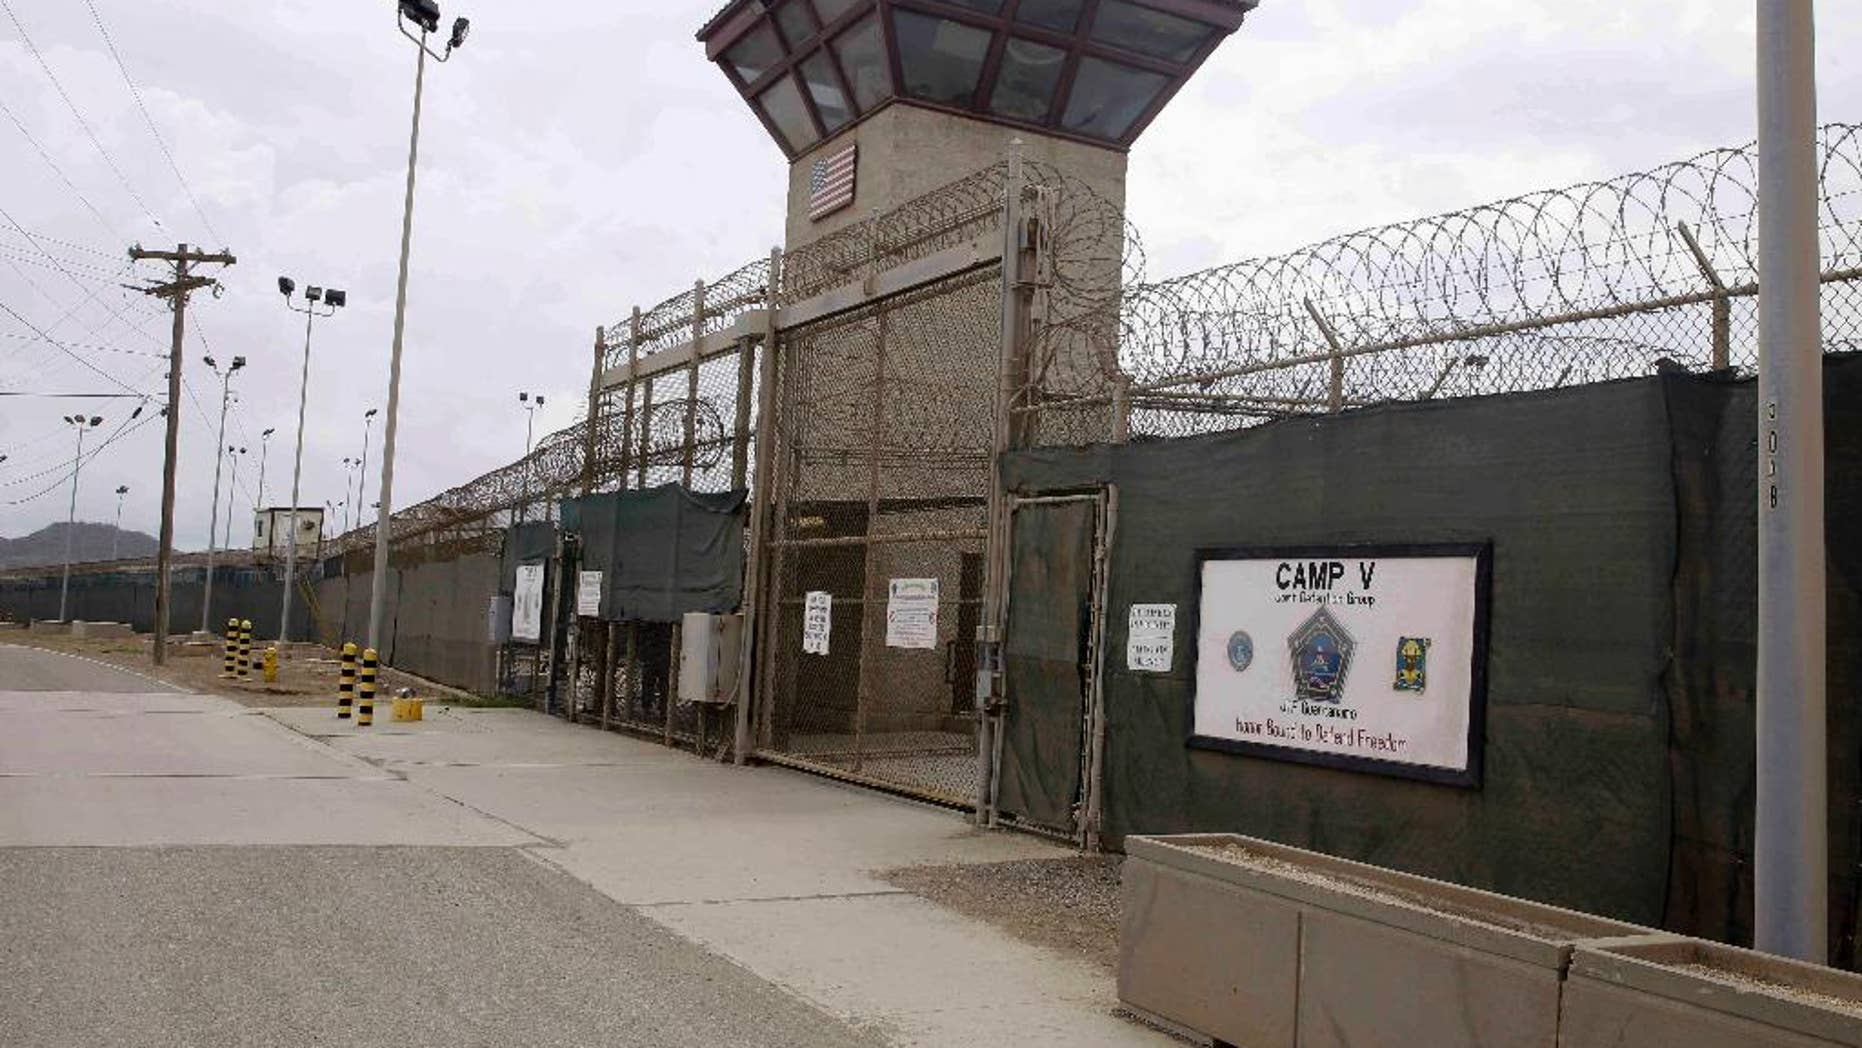 FILE - In this June 7, 2014, file photo, the entrance to Camp 5 and Camp 6 at the U.S. military's Guantanamo Bay detention center, at Guantanamo Bay Naval Base, Cuba. Oman's Foreign Ministry said in a statement Monday, Jan. 16, 2017, it accepted 10 inmates from the U.S. prison at Guantanamo Bay ahead of U.S. President Barack Obama leaving office, part of his efforts to shrink the facility he promised to close. There was no immediate word from the U.S. Defense Department about the transfer. (AP Photo/Ben Fox, File)